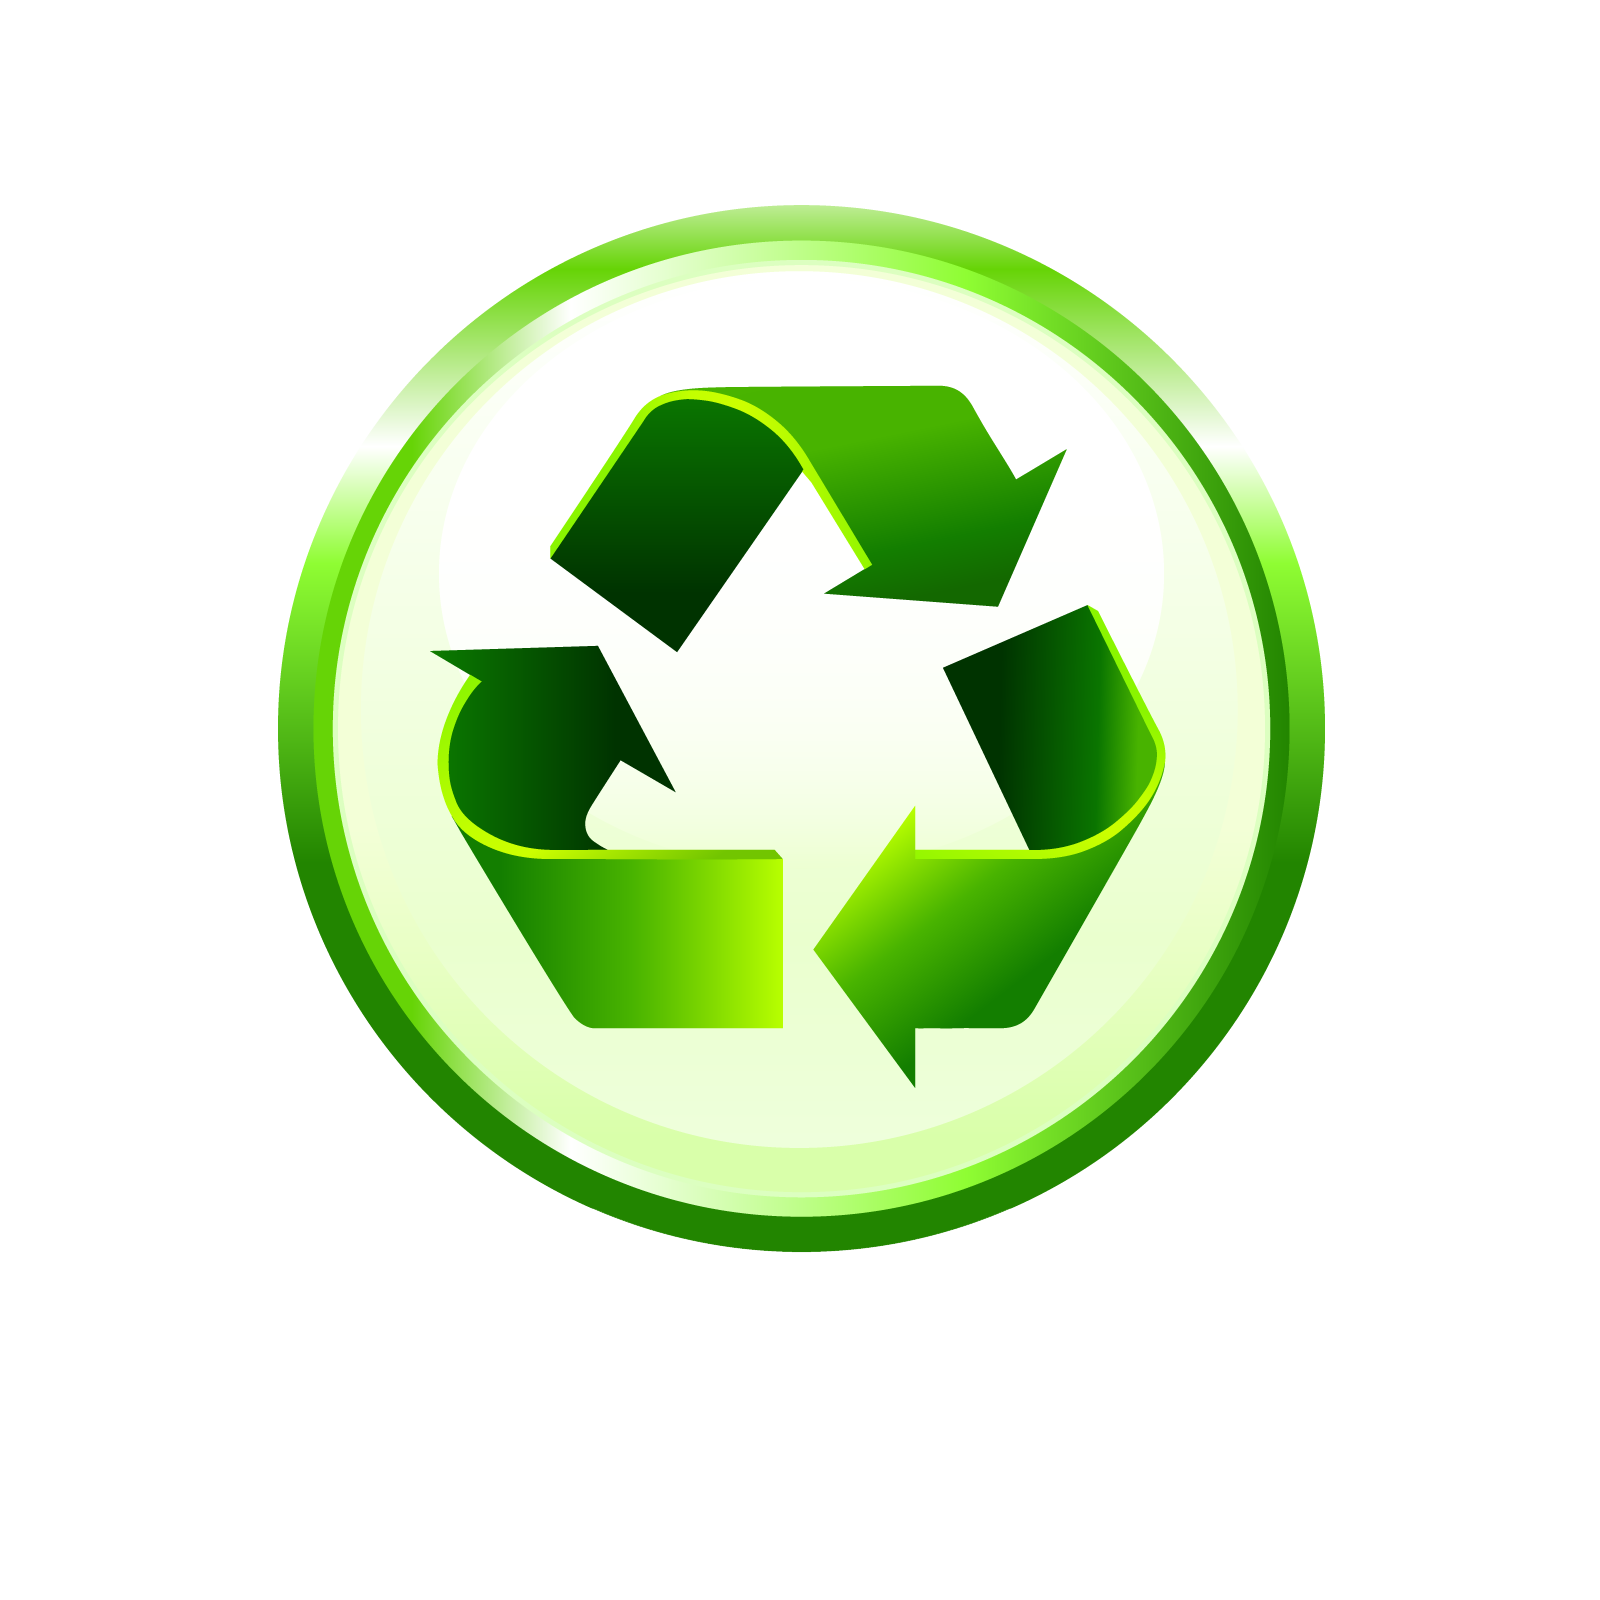 Free Recycle Logo Png, Download Free Clip Art, Free Clip Art.